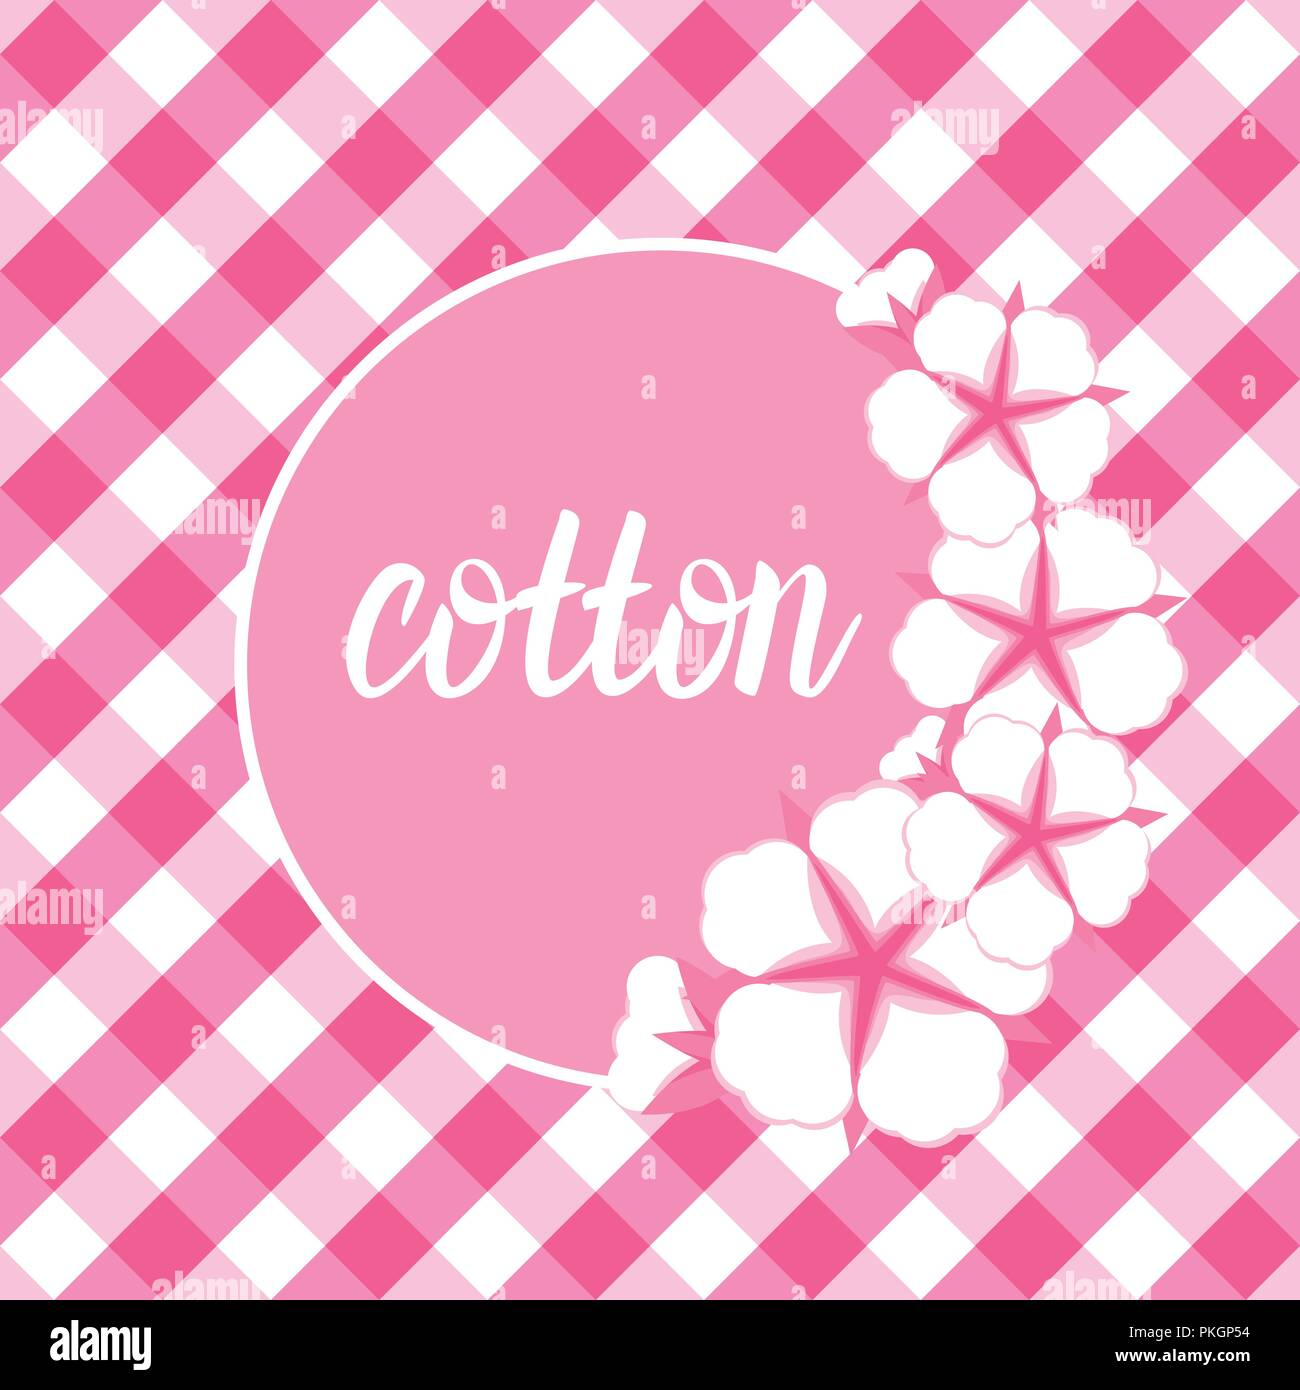 Cotton flower frame flat style on cute pink vichy background cotton flower frame flat style on cute pink vichy background vector illustration mightylinksfo